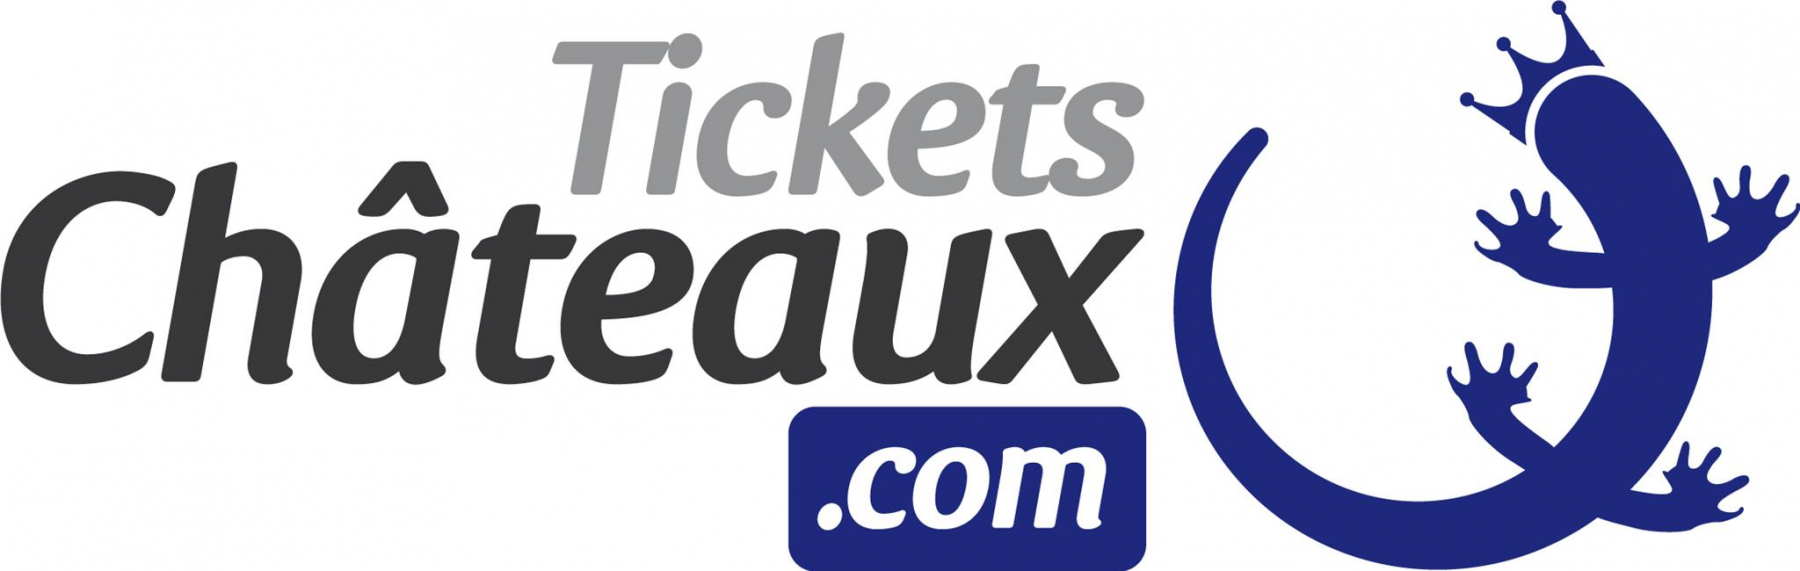 Tickets Châteaux